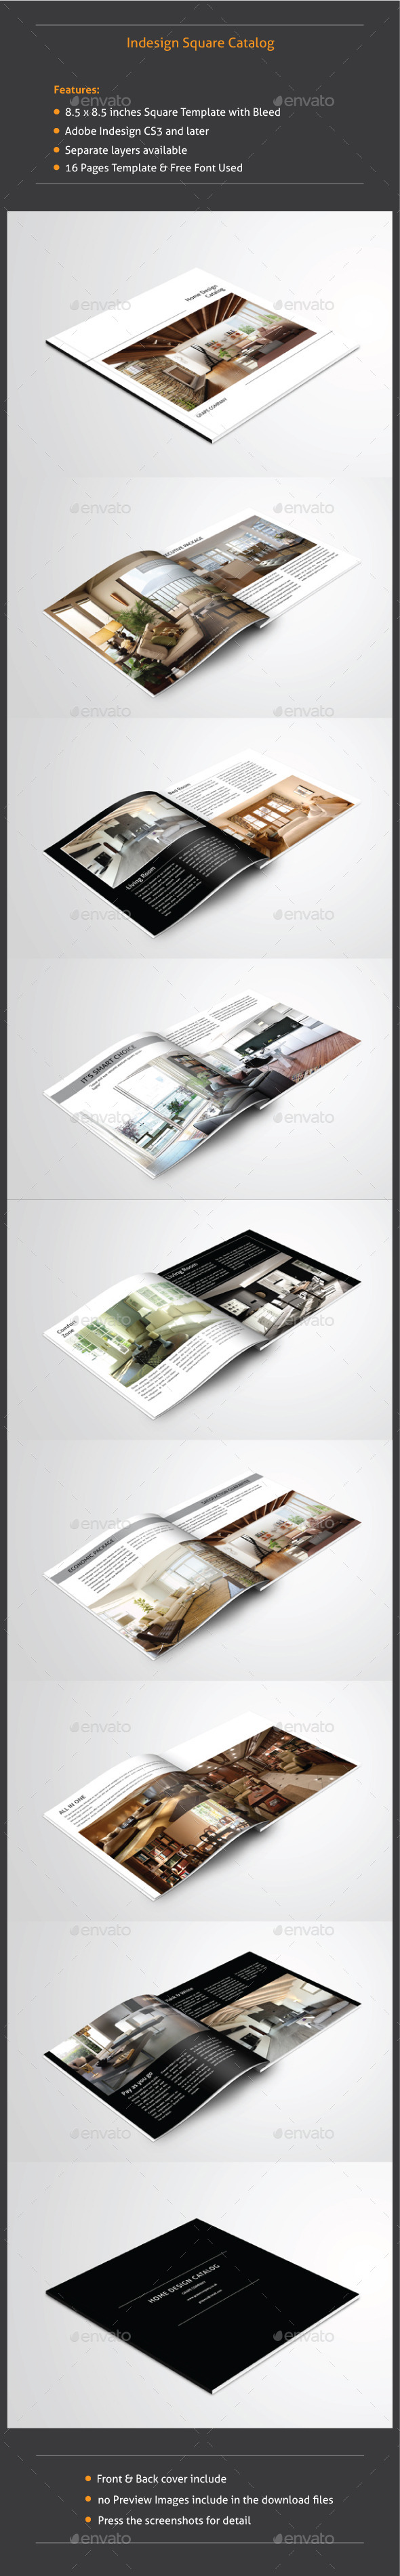 GraphicRiver Indesign Square Catalog 9232185